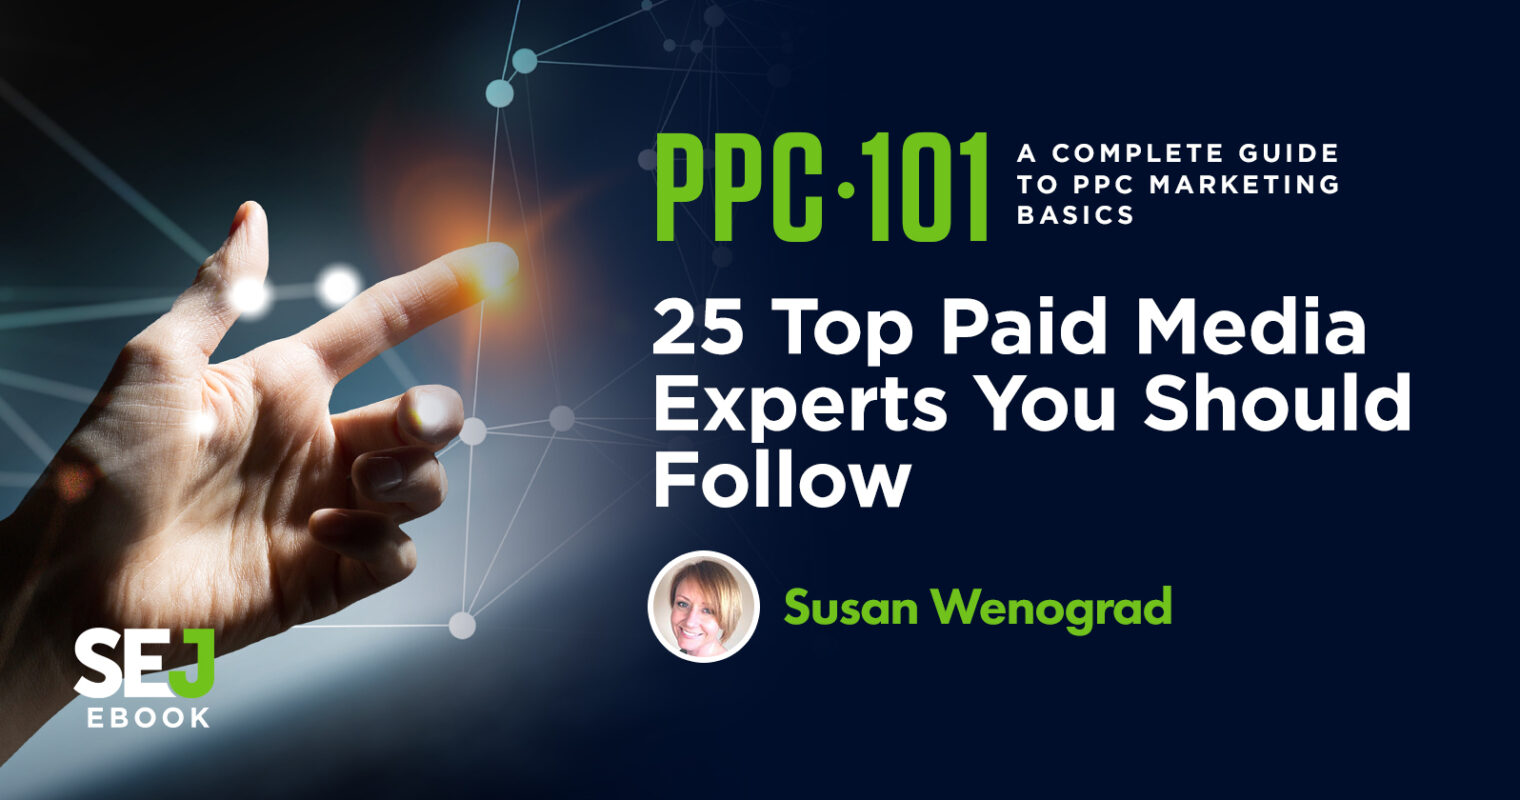 25 Top Paid Media Experts You Should Follow